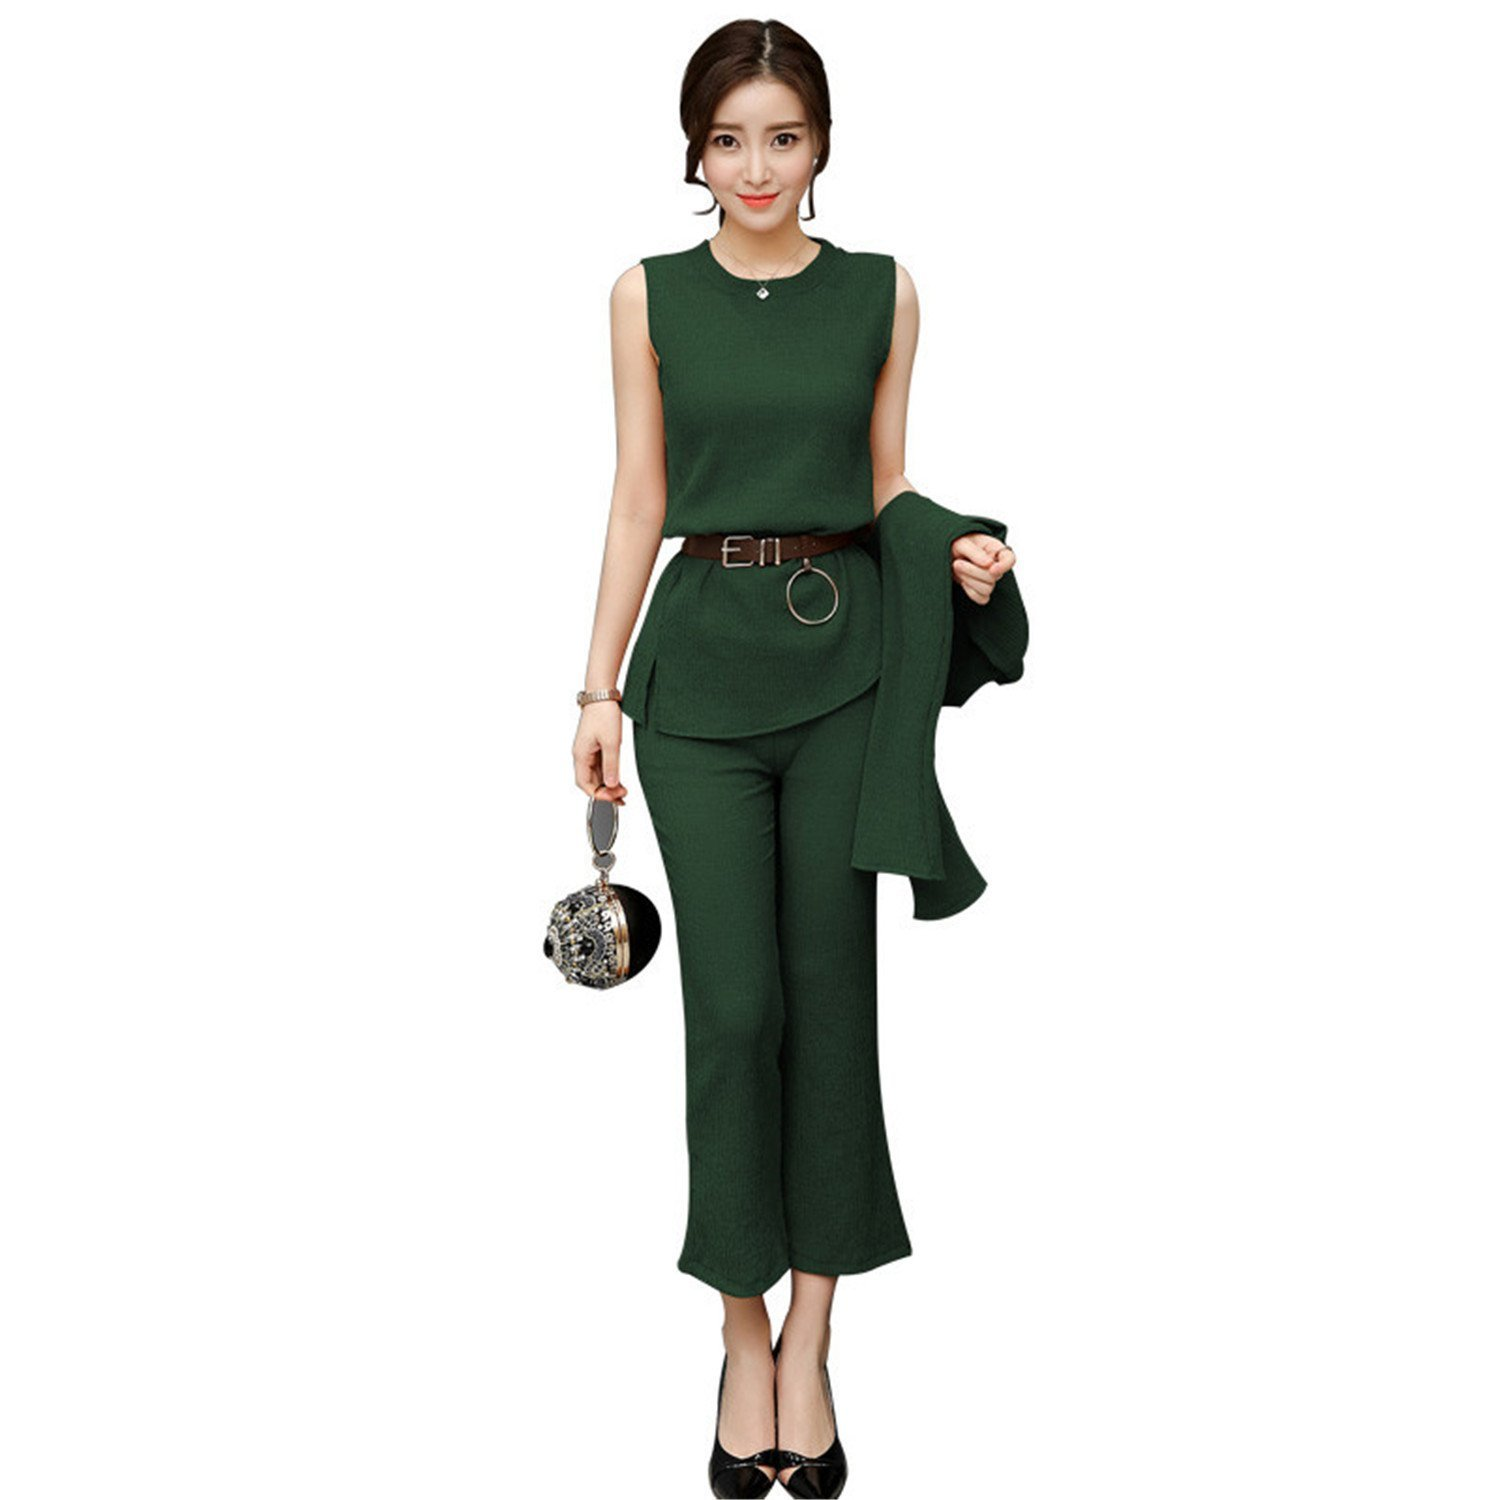 Shining4U Women Suit Temperament Solid color Wide leg pants Round collar Three-piece Sets Women M-2XL WXY141